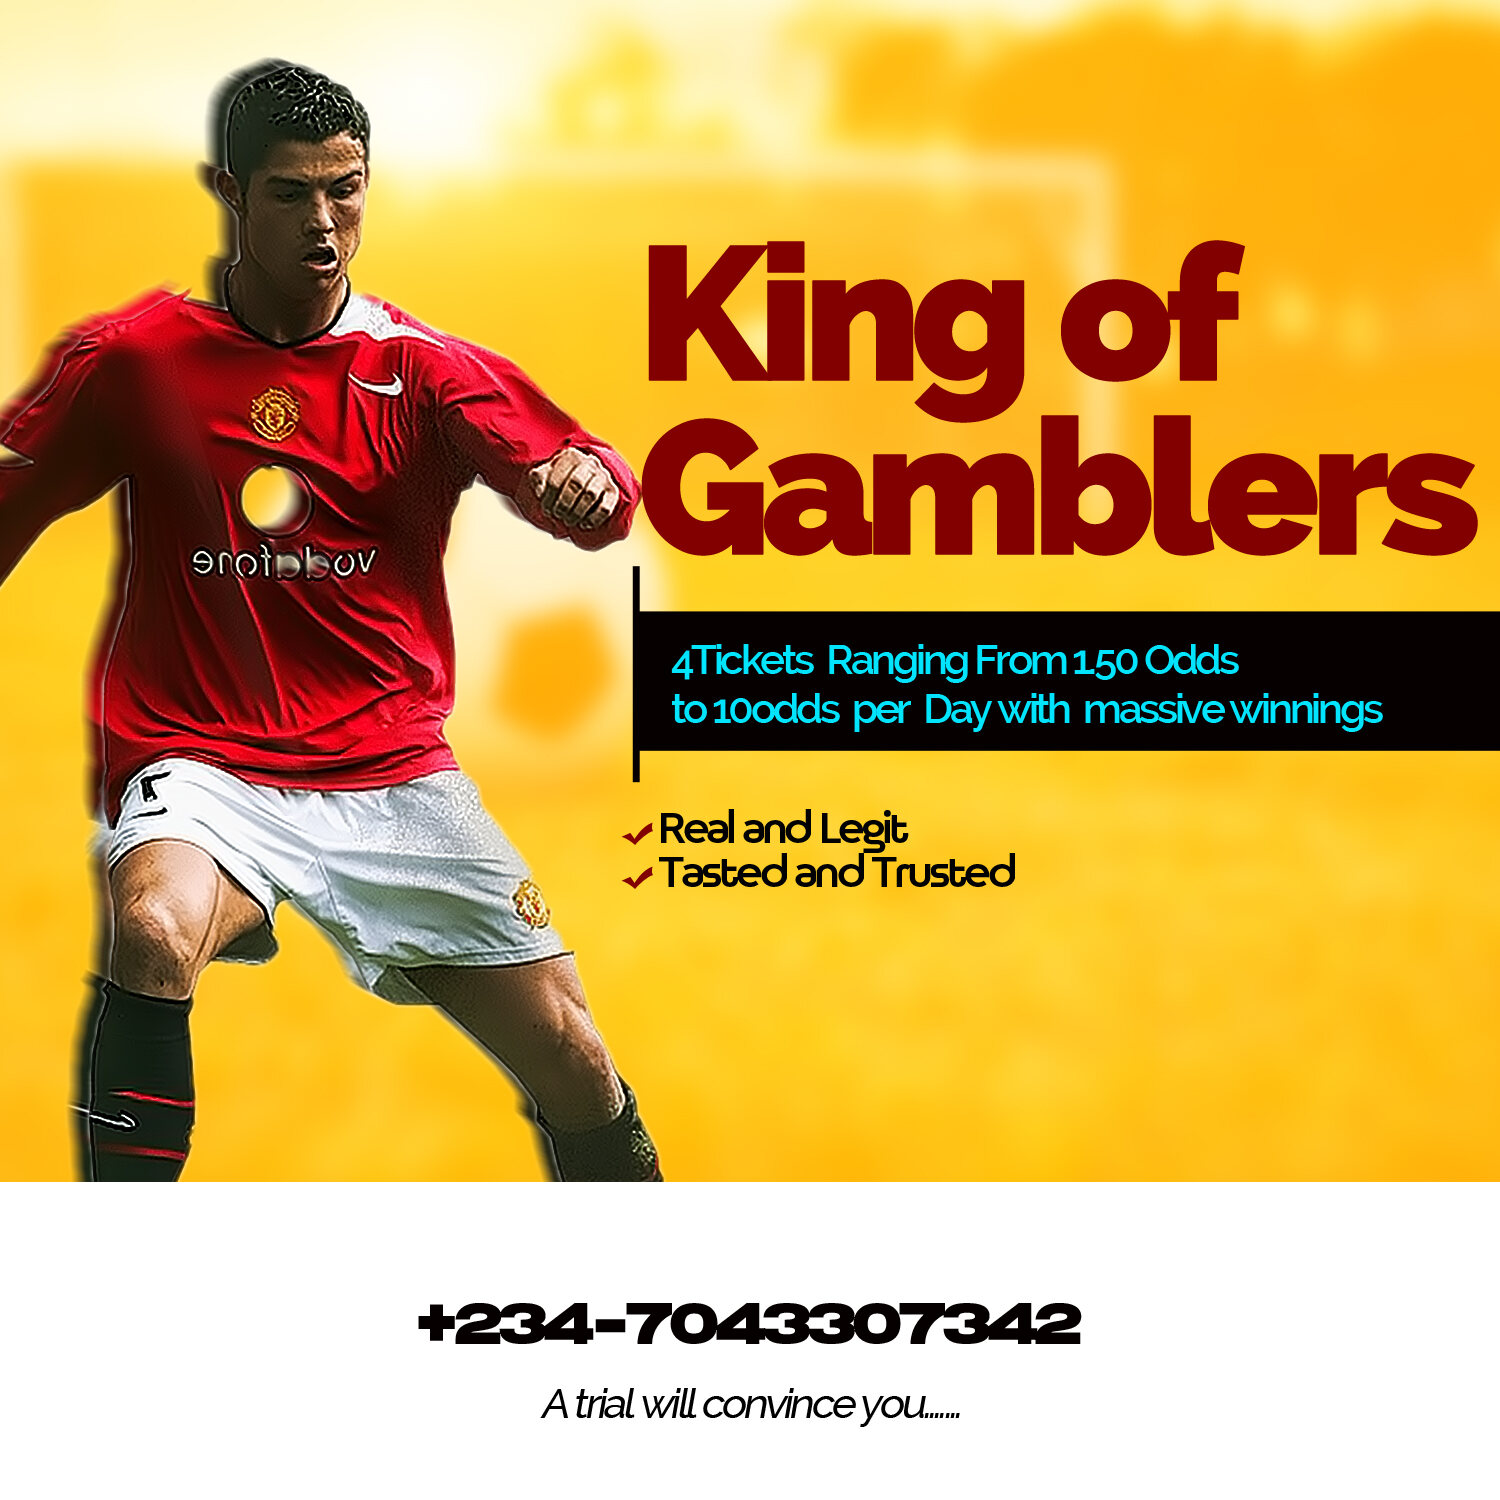 4 Tickets Ranging From 1.50odds To 10odds Per Day With Massive Winnings (See How)